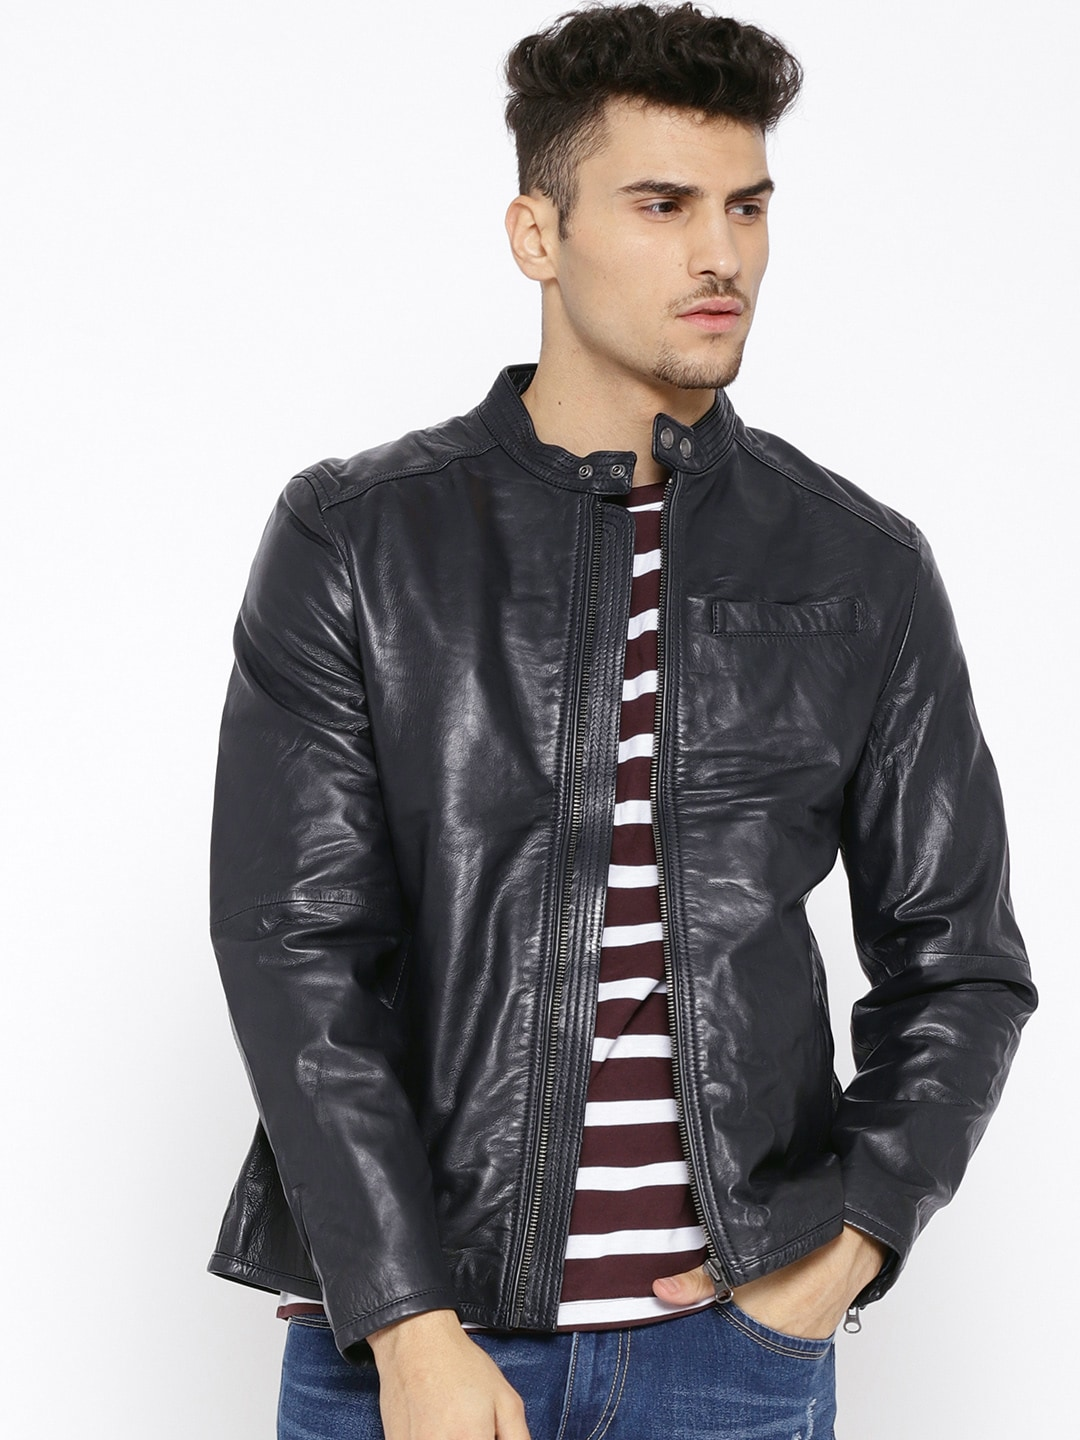 Jackets - Buy Leather Jackets 1eaff6a158519